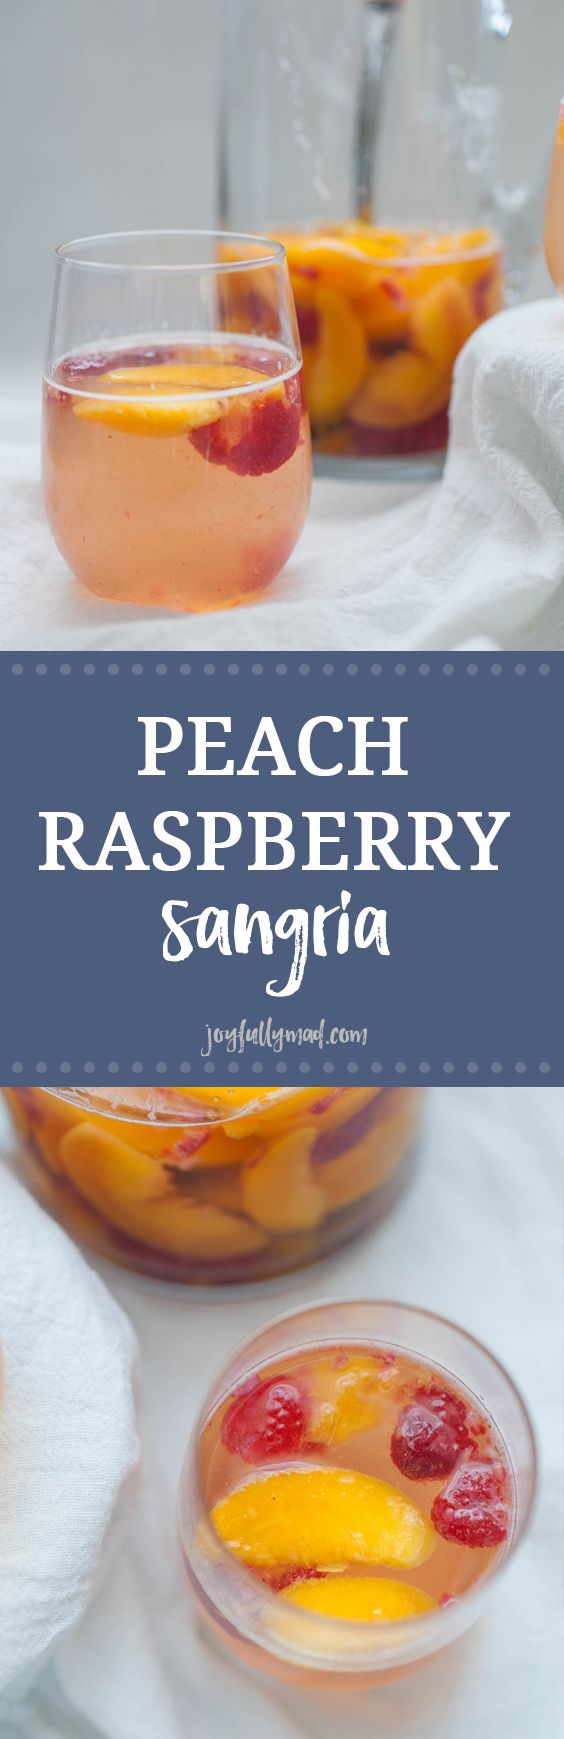 This Peach Raspberry Sangria is going to be the hit of all of your summer get togethers! A simple sangria recipe with peaches, raspberry, Moscato wine and a quick peach simple syrup makes this cocktai (Party Mix Drinks)